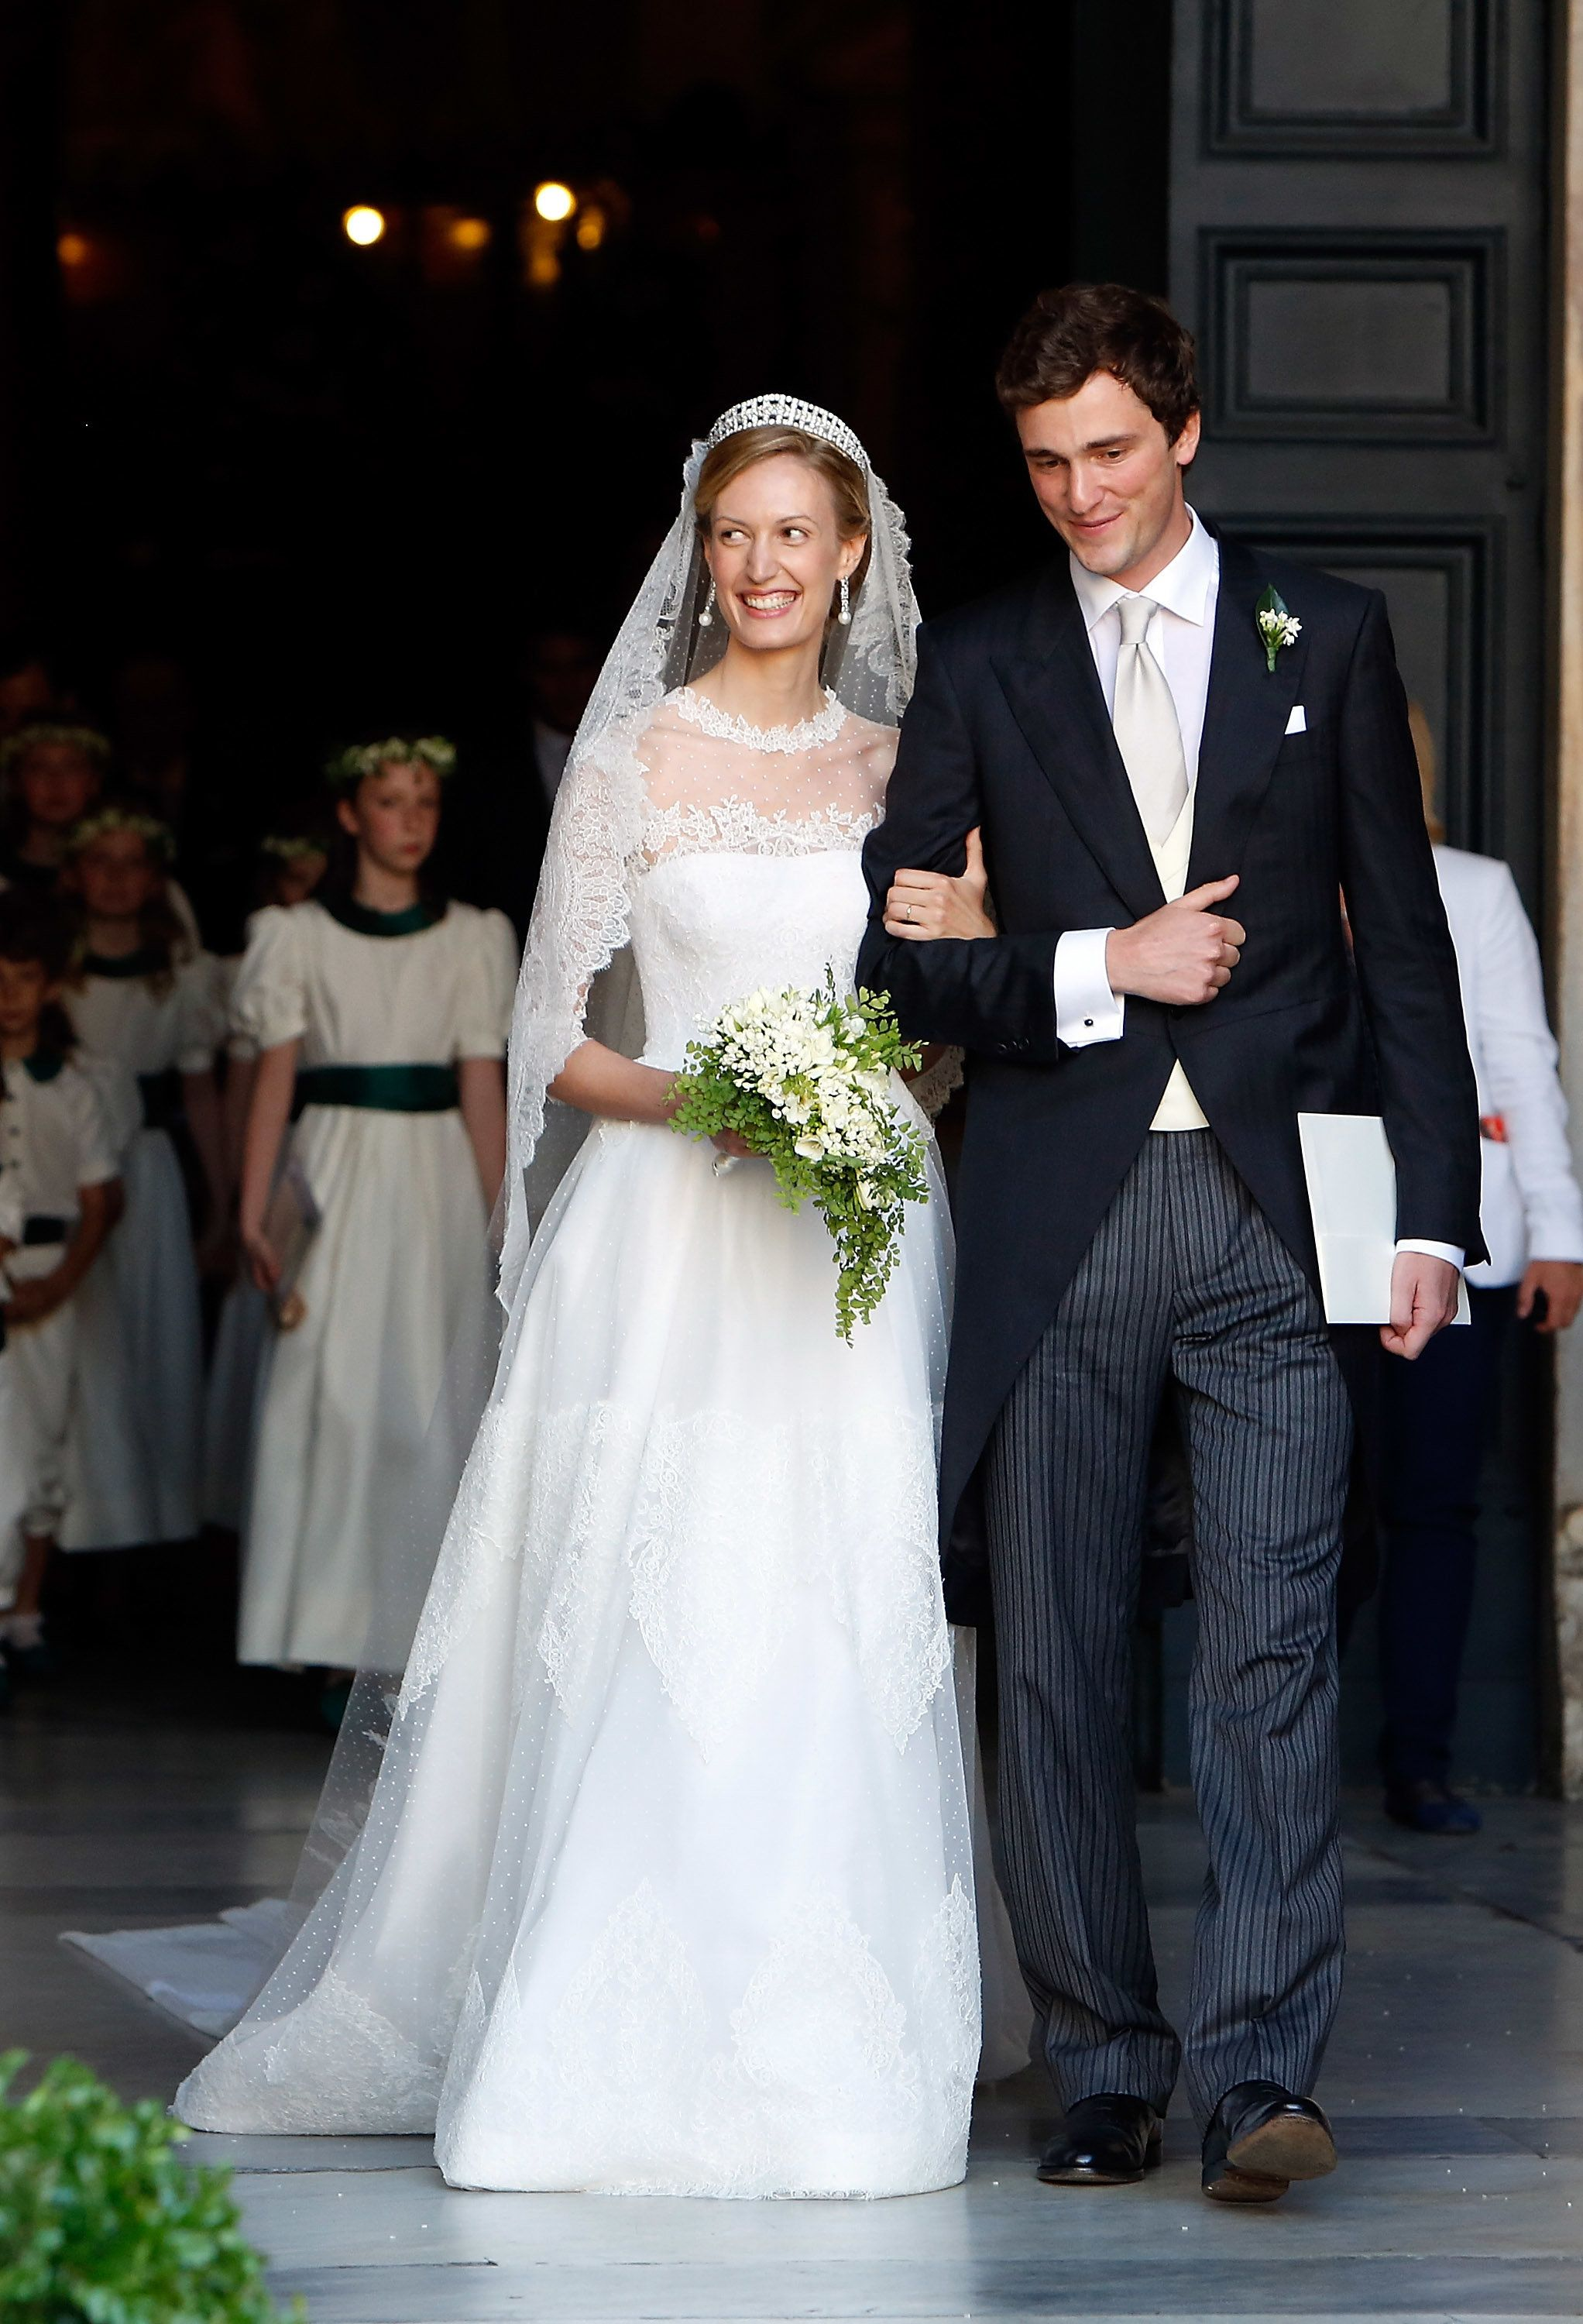 ROME, ITALY - JULY 05:  Prince Amedeo of Belgium and Princess Elisabetta Maria celebrate after their wedding ceremony at Basilica Santa Maria in Trastevere on July 5, 2014 in Rome, Italy.  (Photo by Elisabetta Villa/Getty Images)